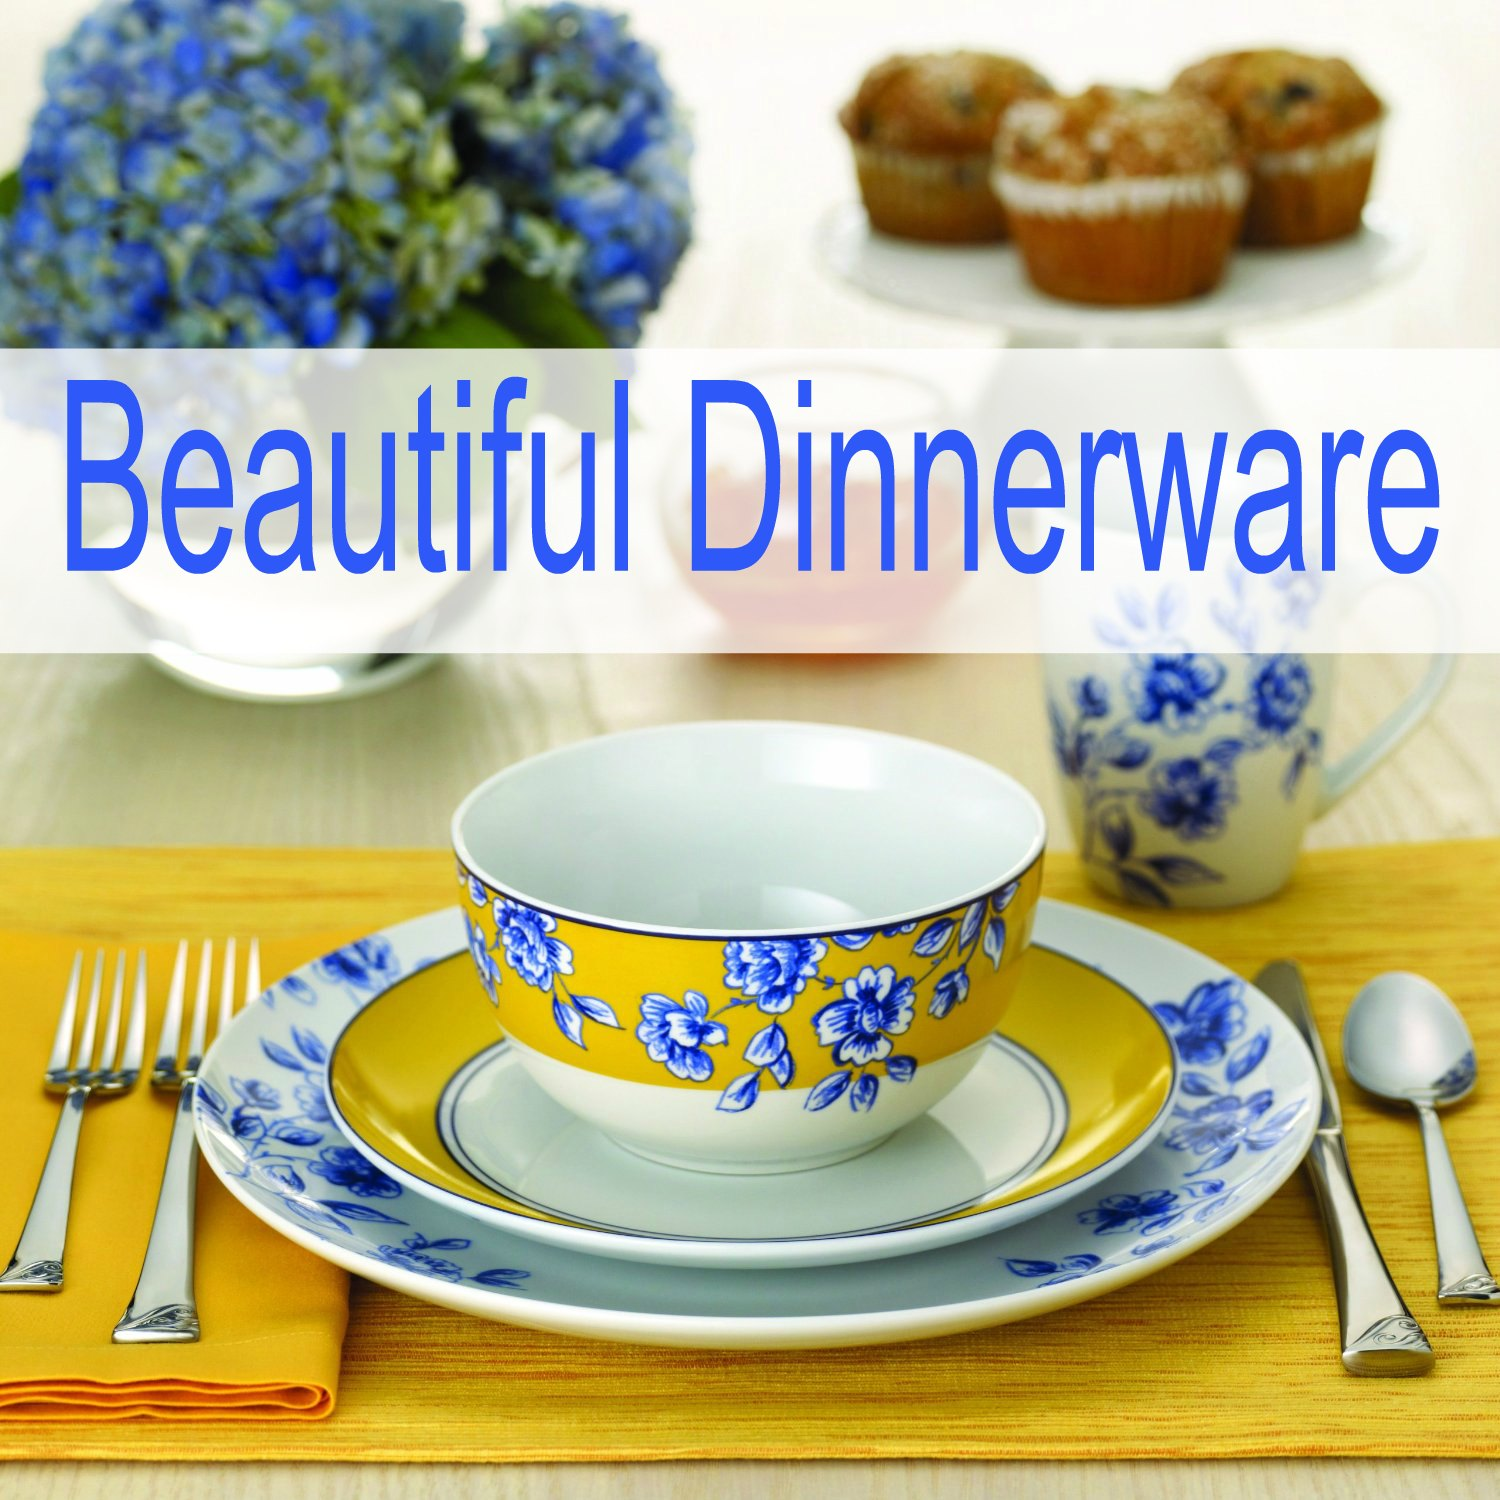 Beautiful Dinnerware